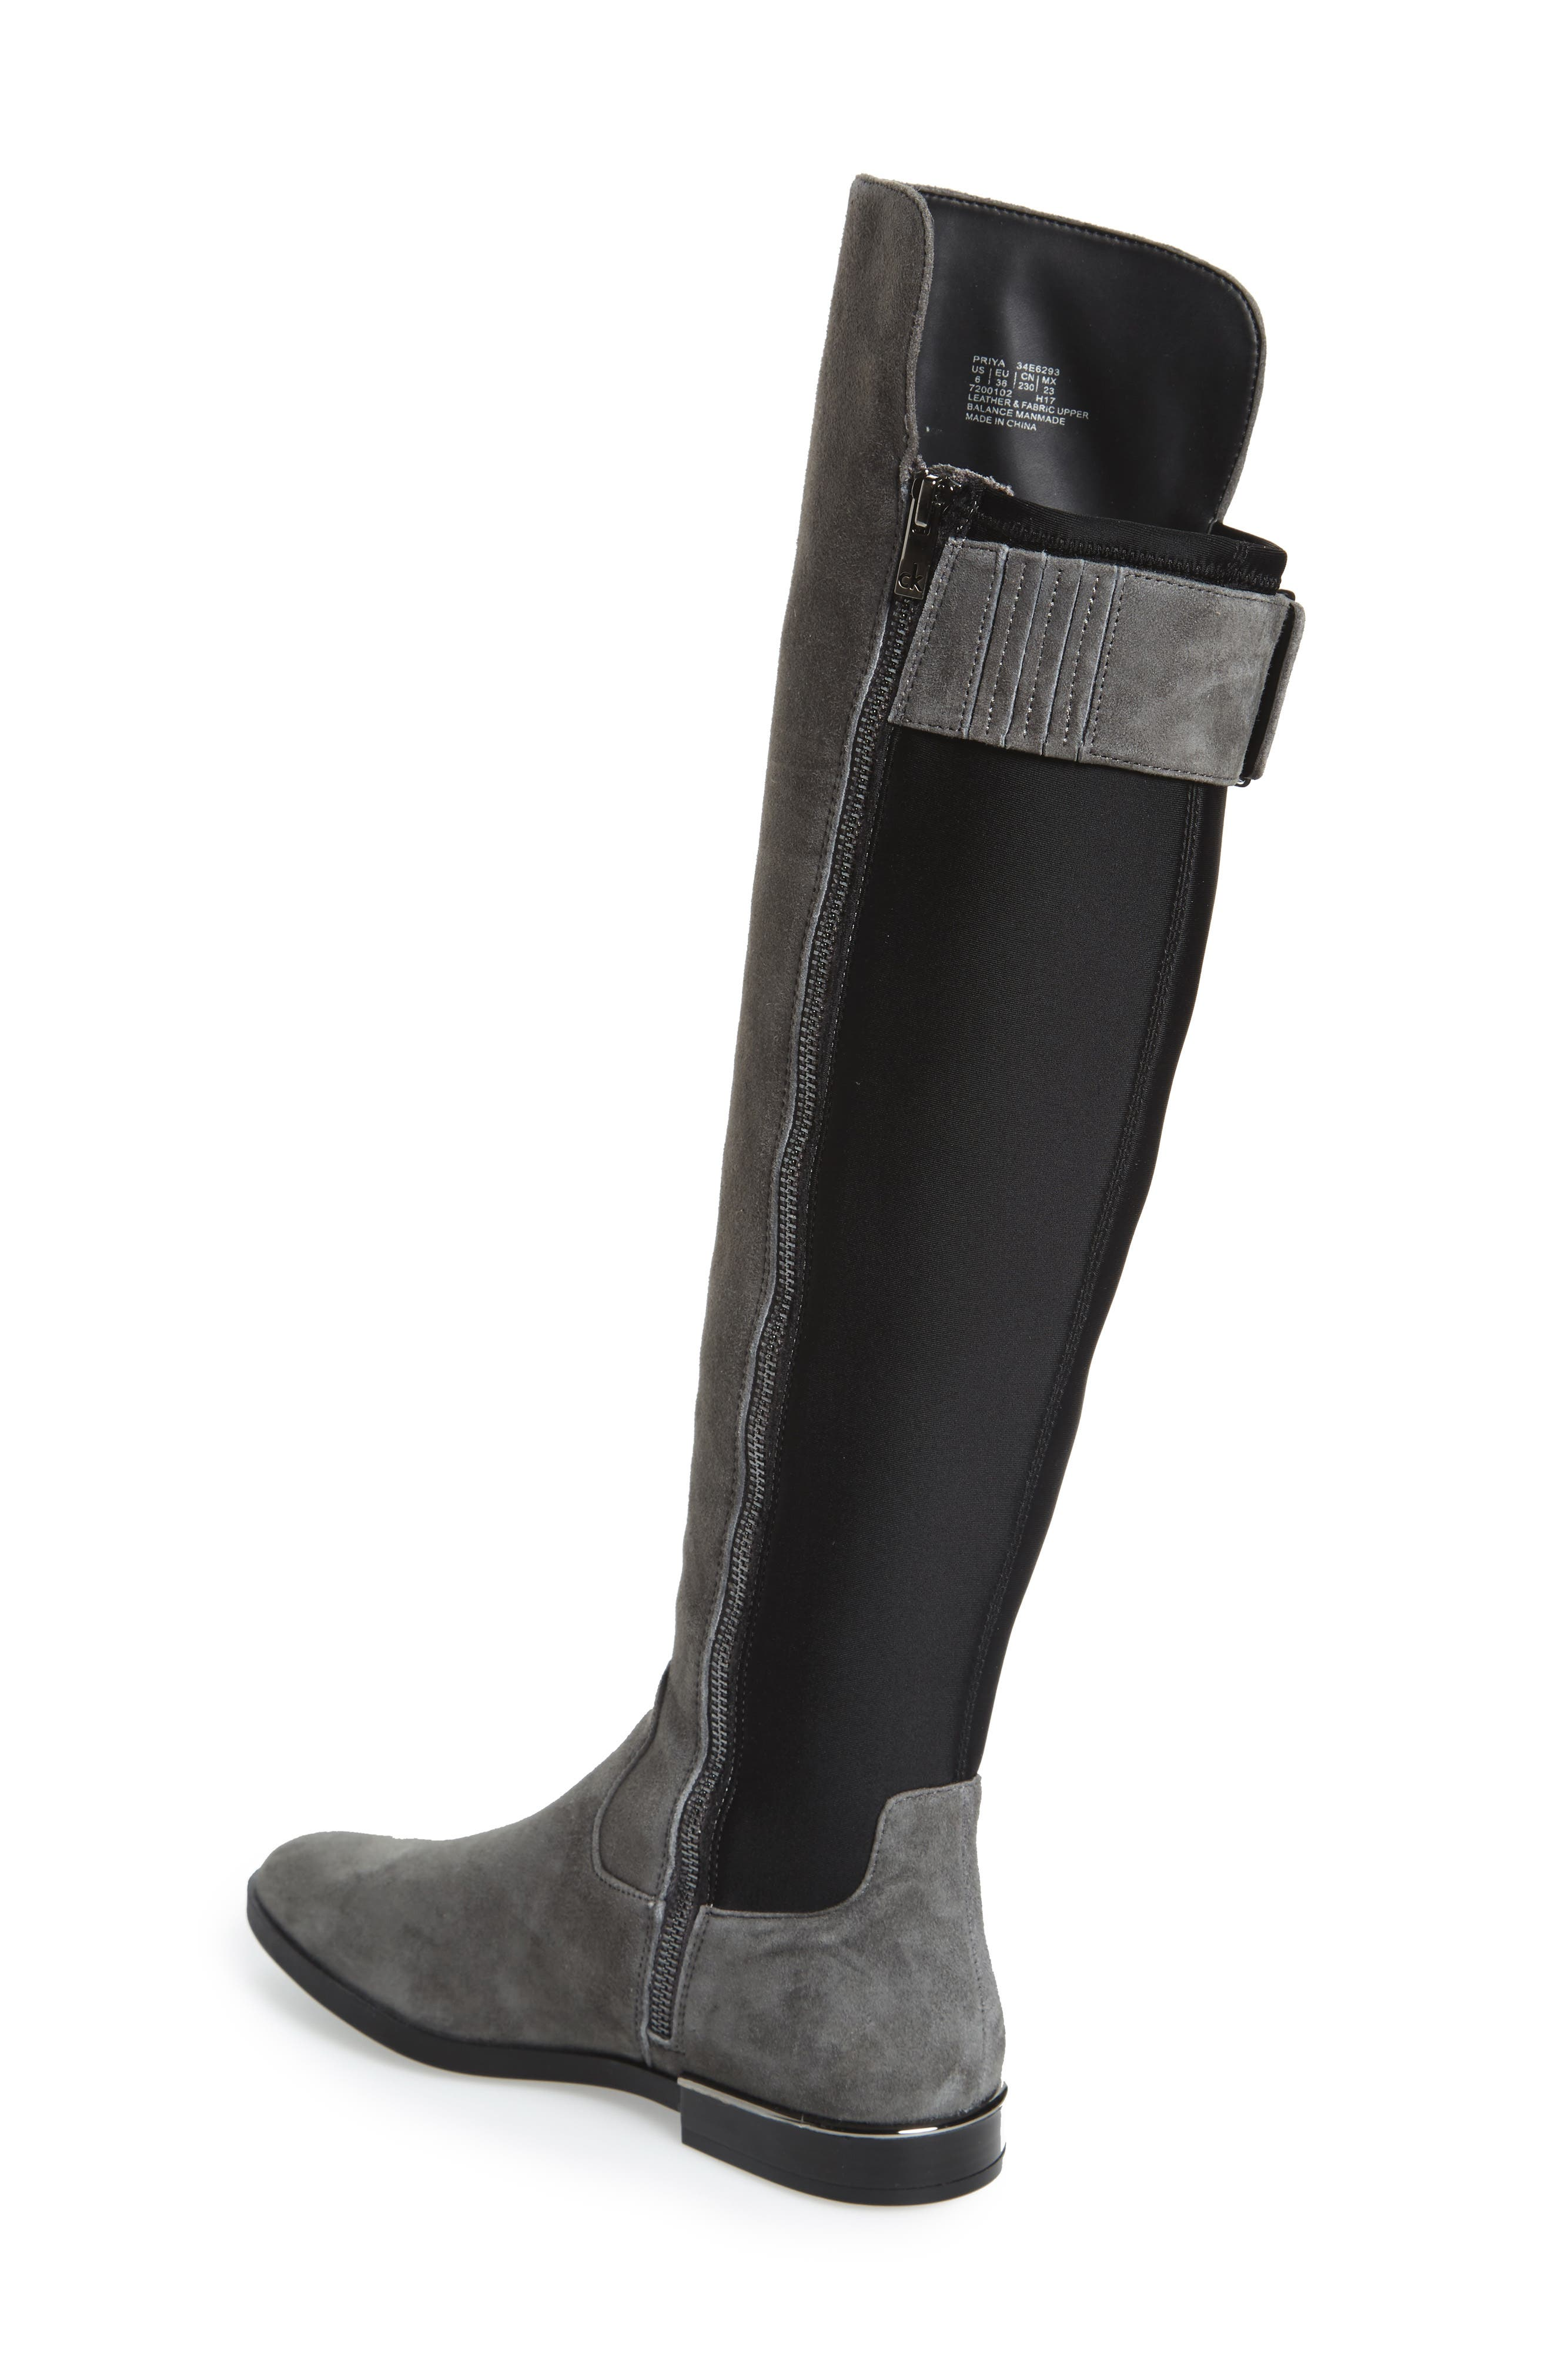 Priya Over the Knee Boot,                             Alternate thumbnail 2, color,                             Slate/ Black Suede